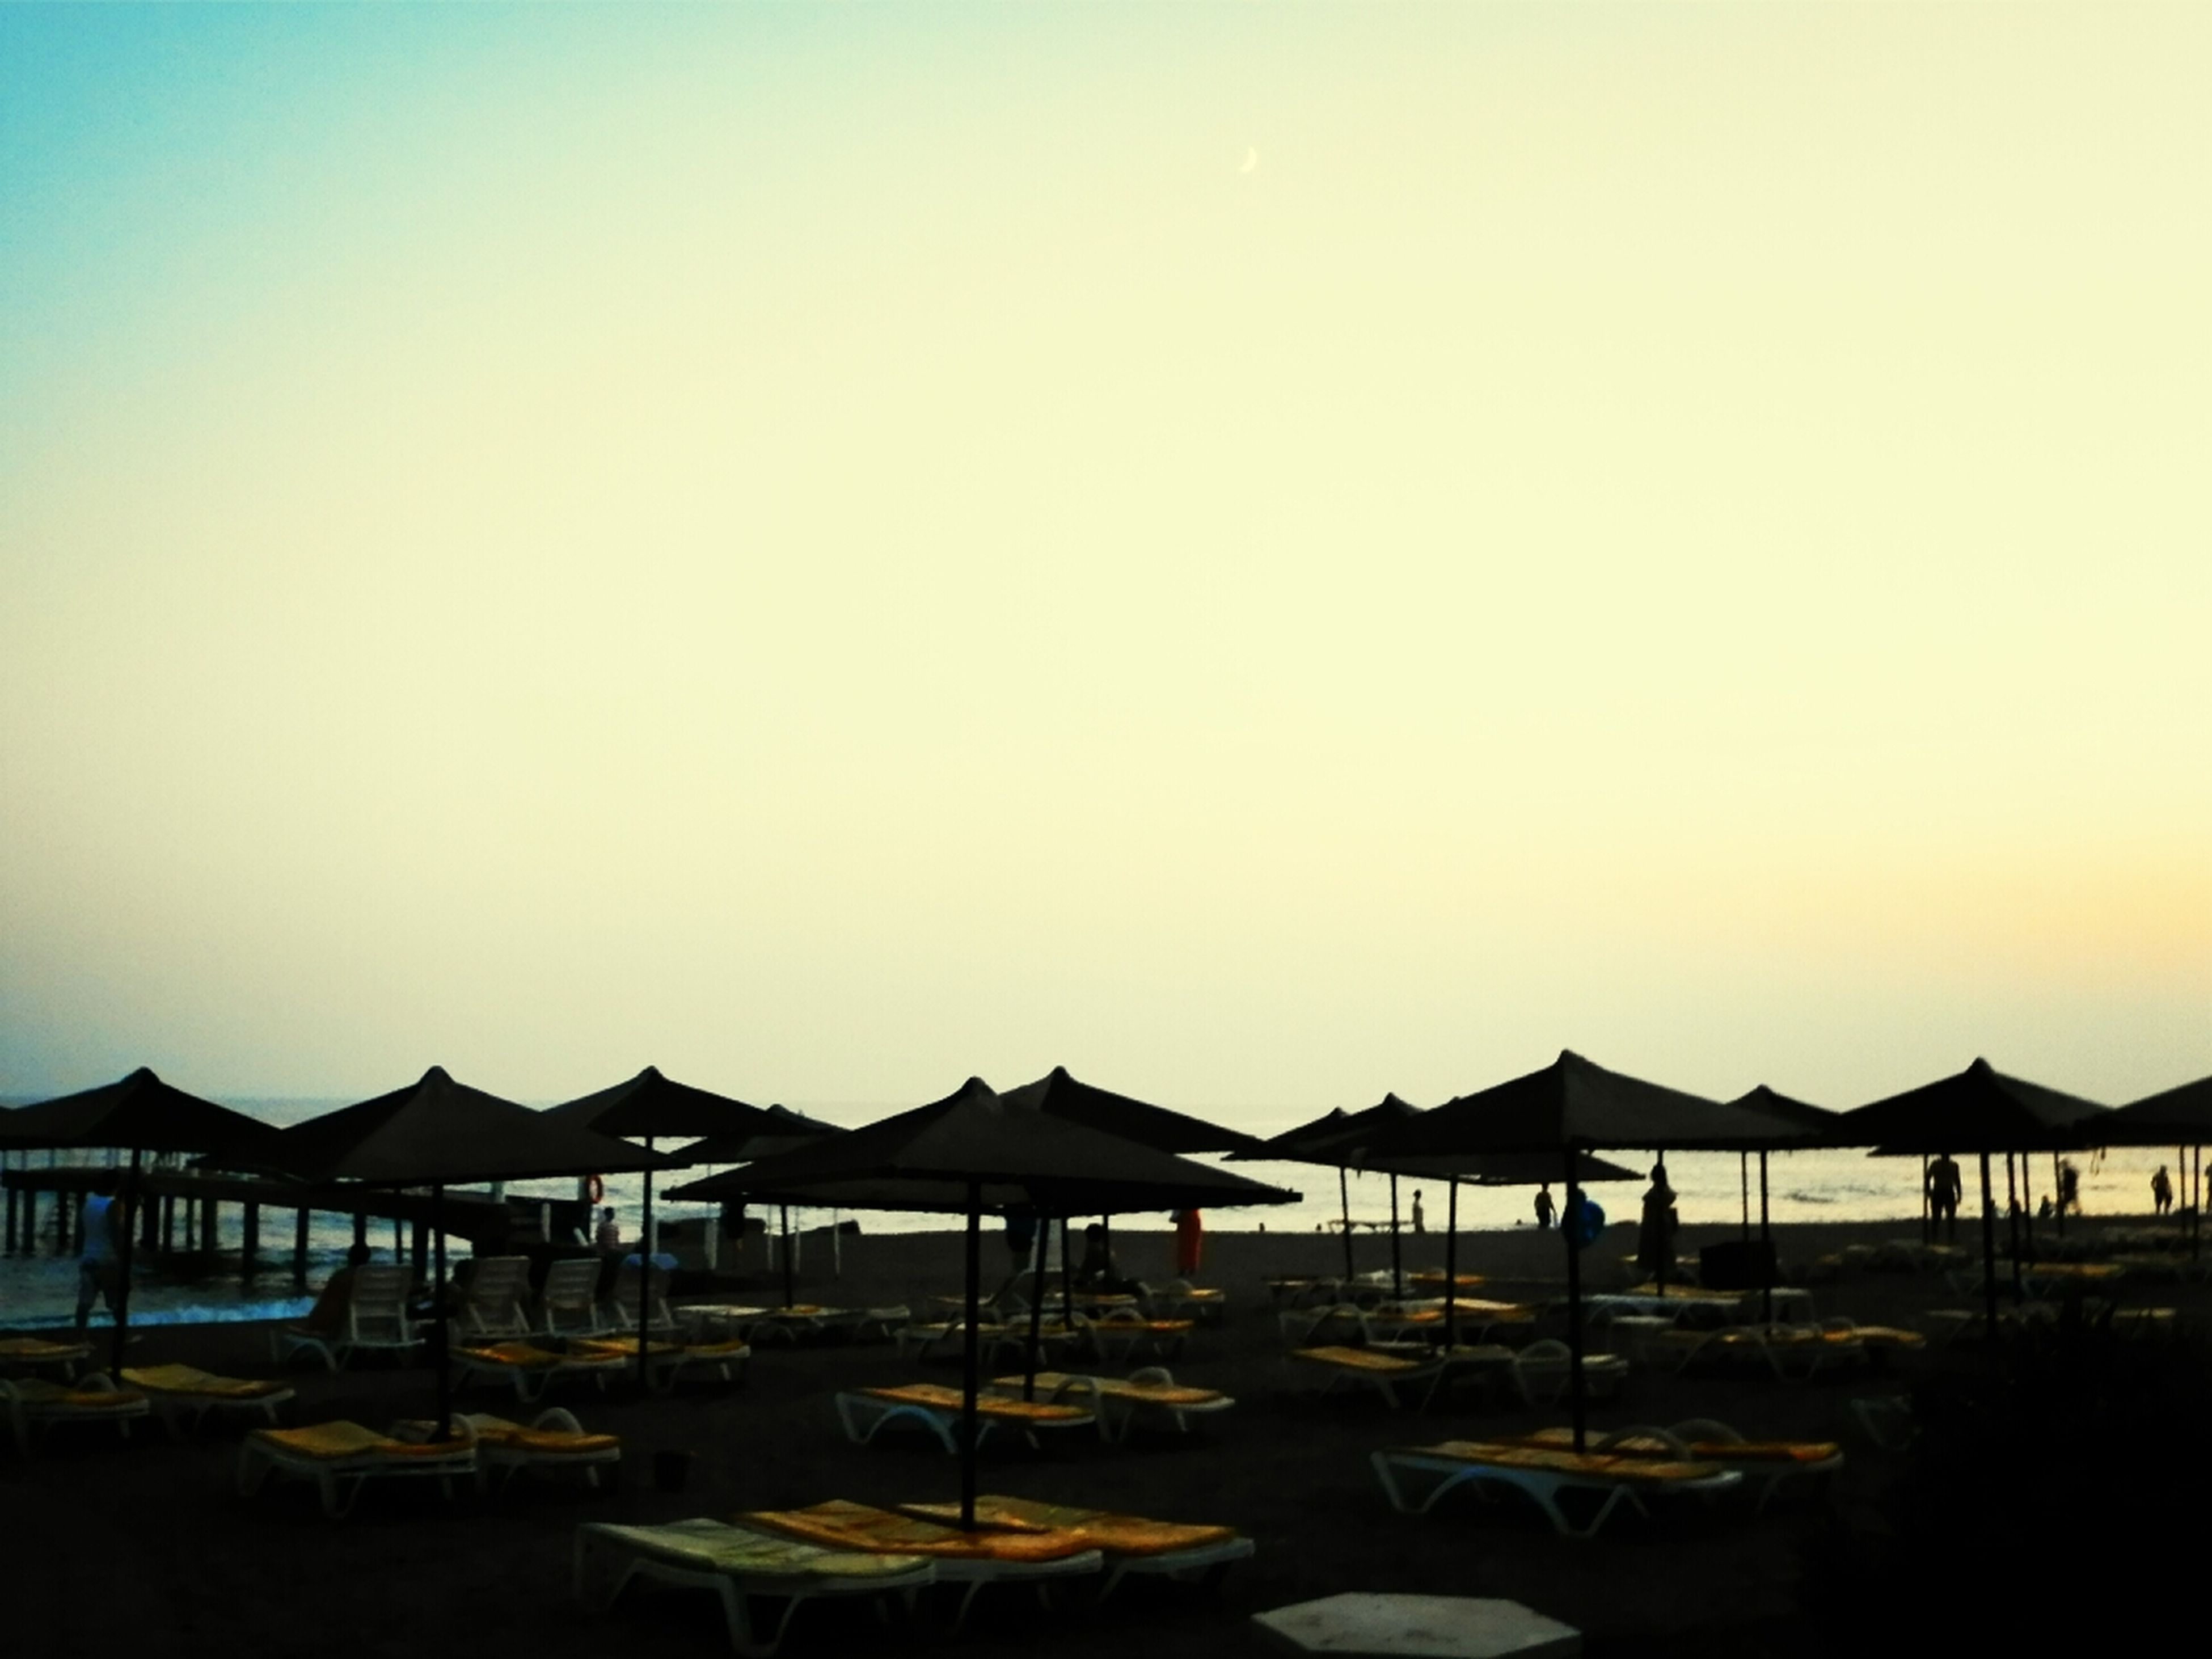 clear sky, copy space, water, sea, tranquil scene, beach, tranquility, chair, built structure, horizon over water, scenics, nature, incidental people, parasol, beauty in nature, sunshade, empty, architecture, pier, outdoors